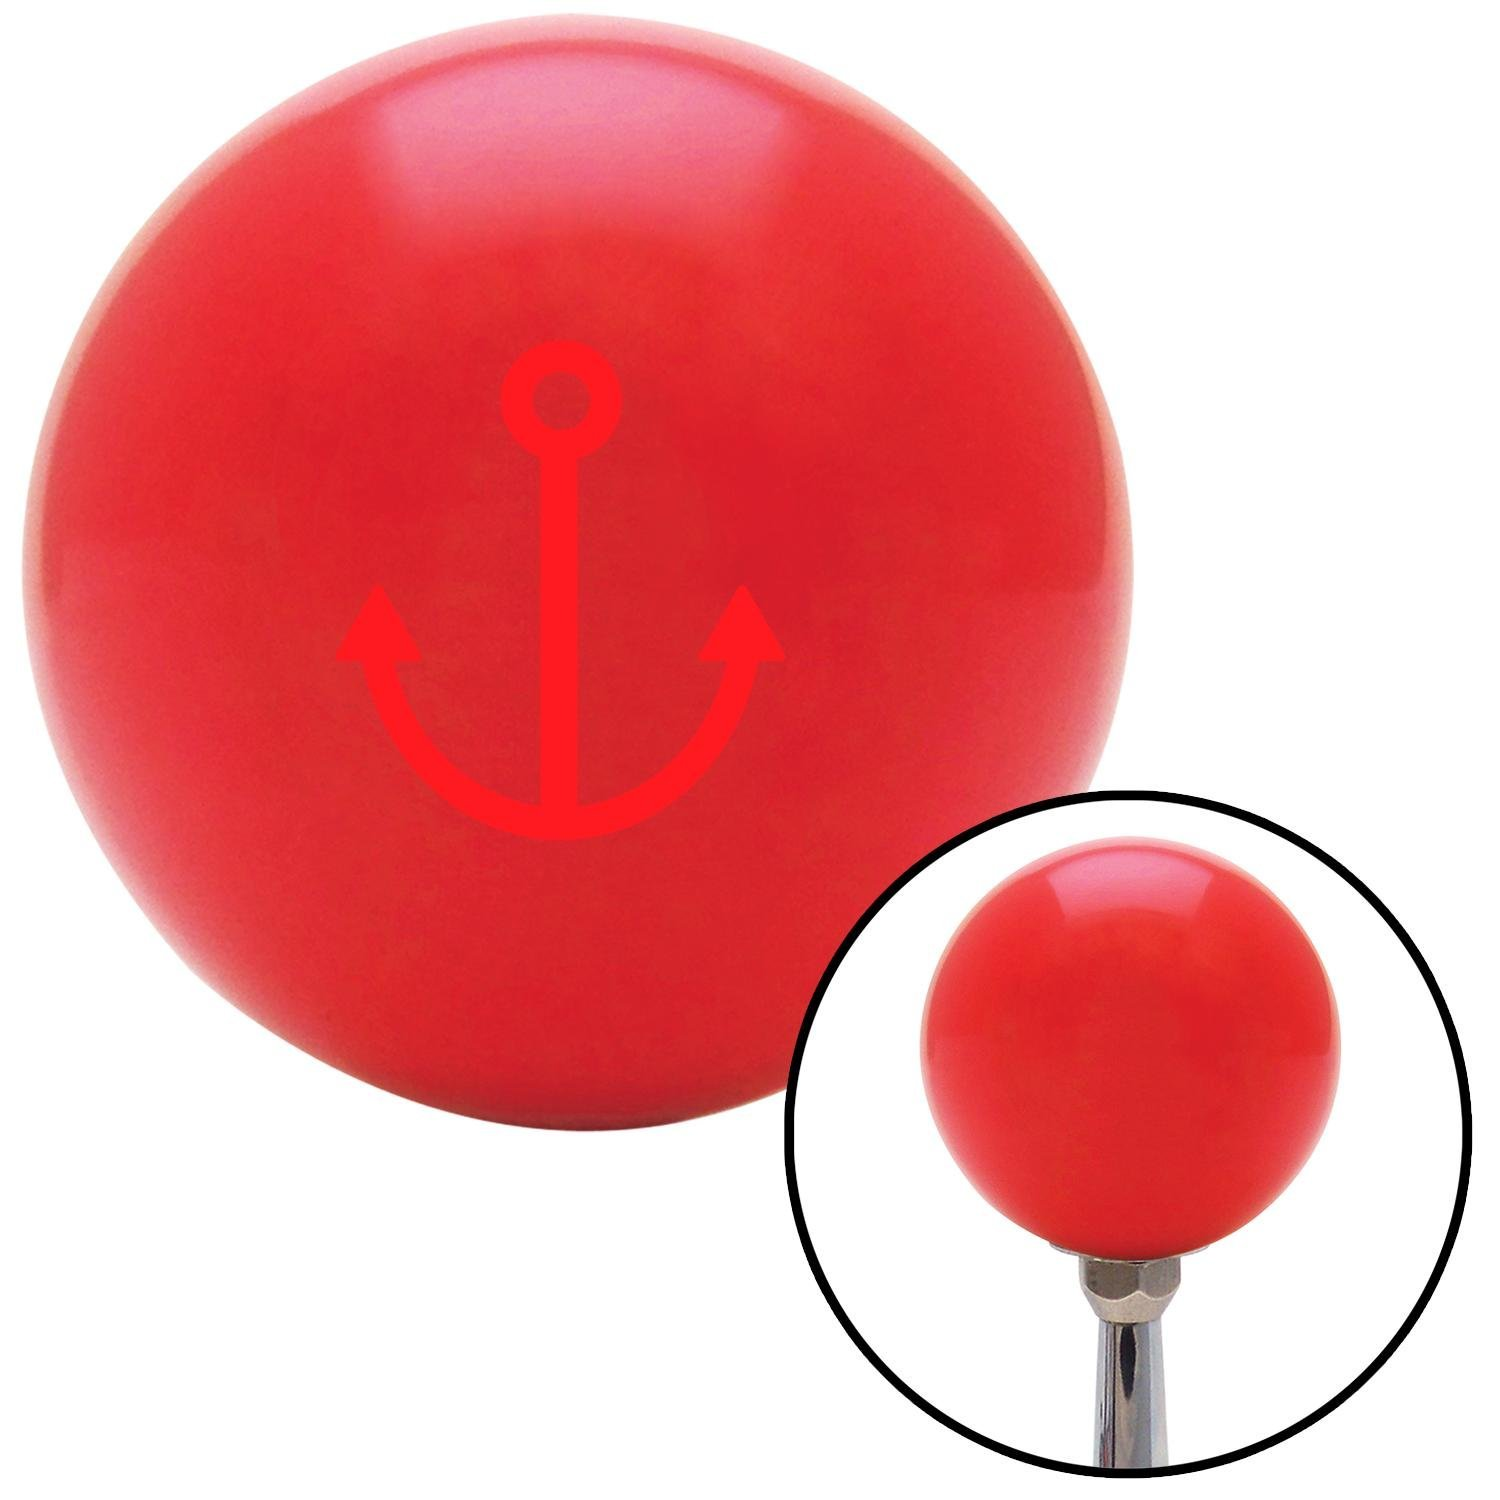 American Shifter 98054 Red Shift Knob with M16 x 1.5 Insert Red Anchor Design